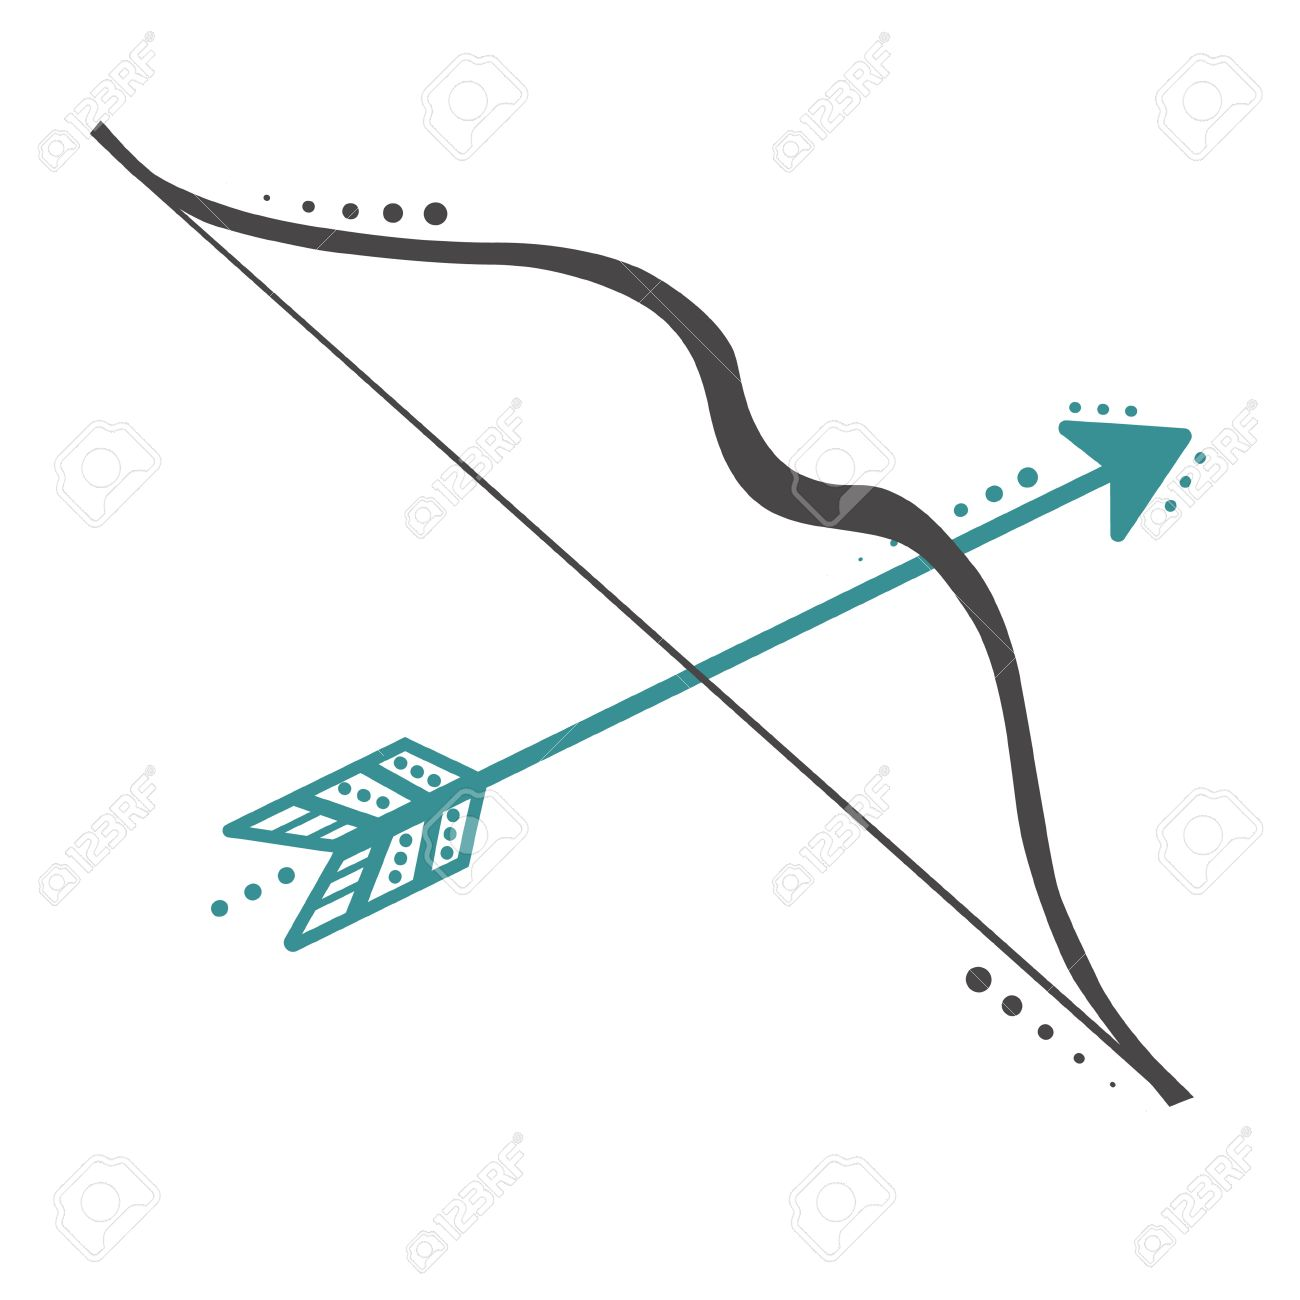 Bow And Arrow Transparent Background - Cute Retro Bow And Arrows On A Transparent White Background ...